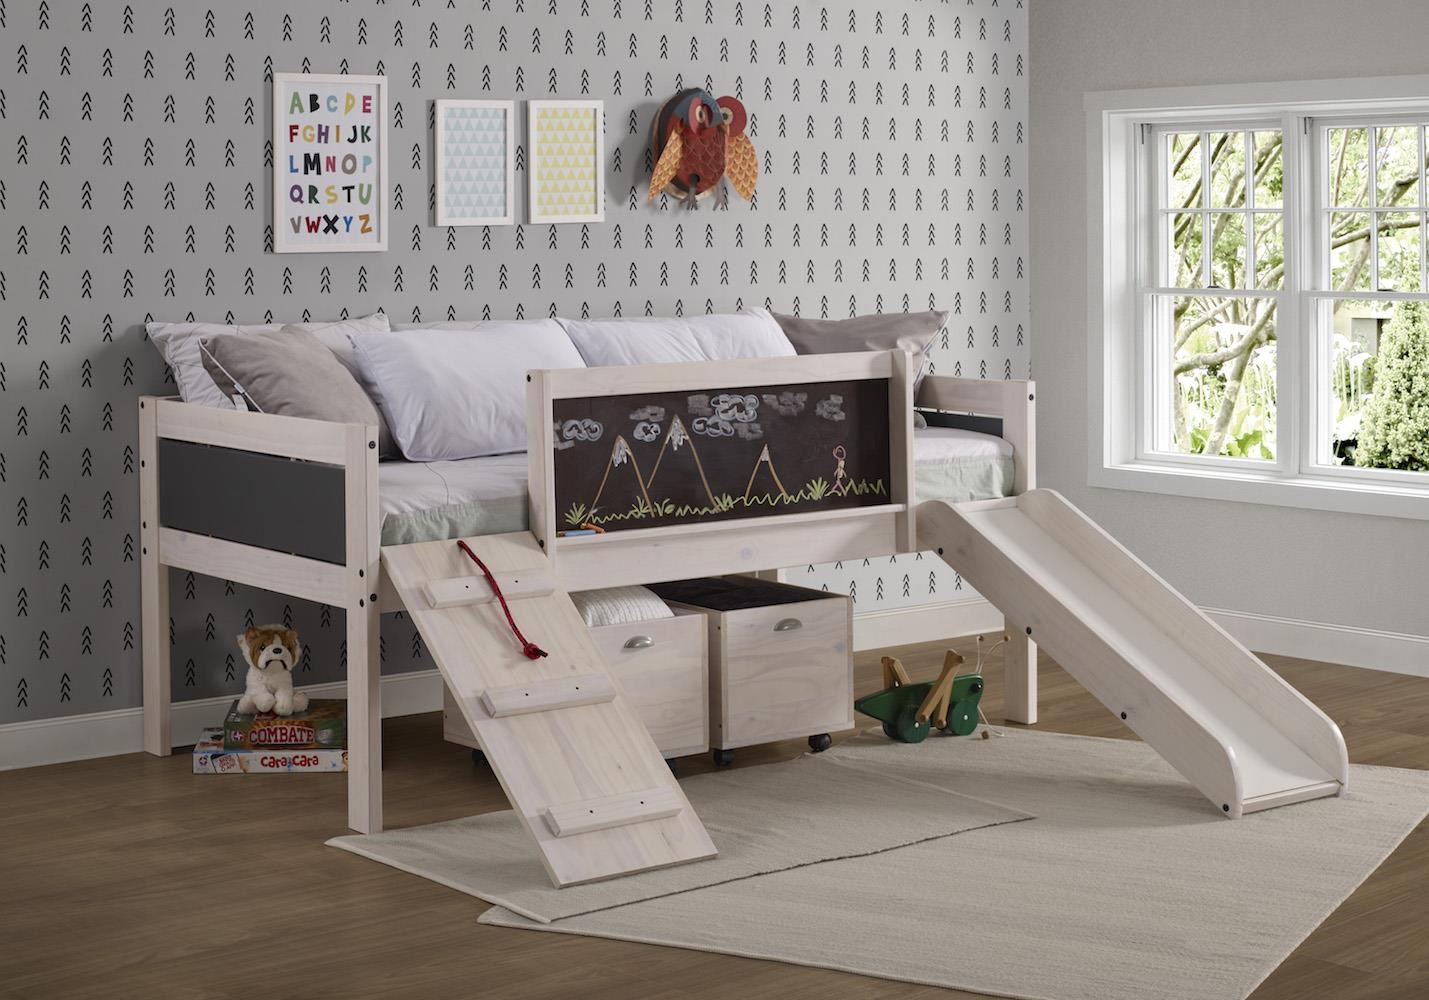 Artie Artie Sleep and Play Bed by Donco Trading Co at Morris Home